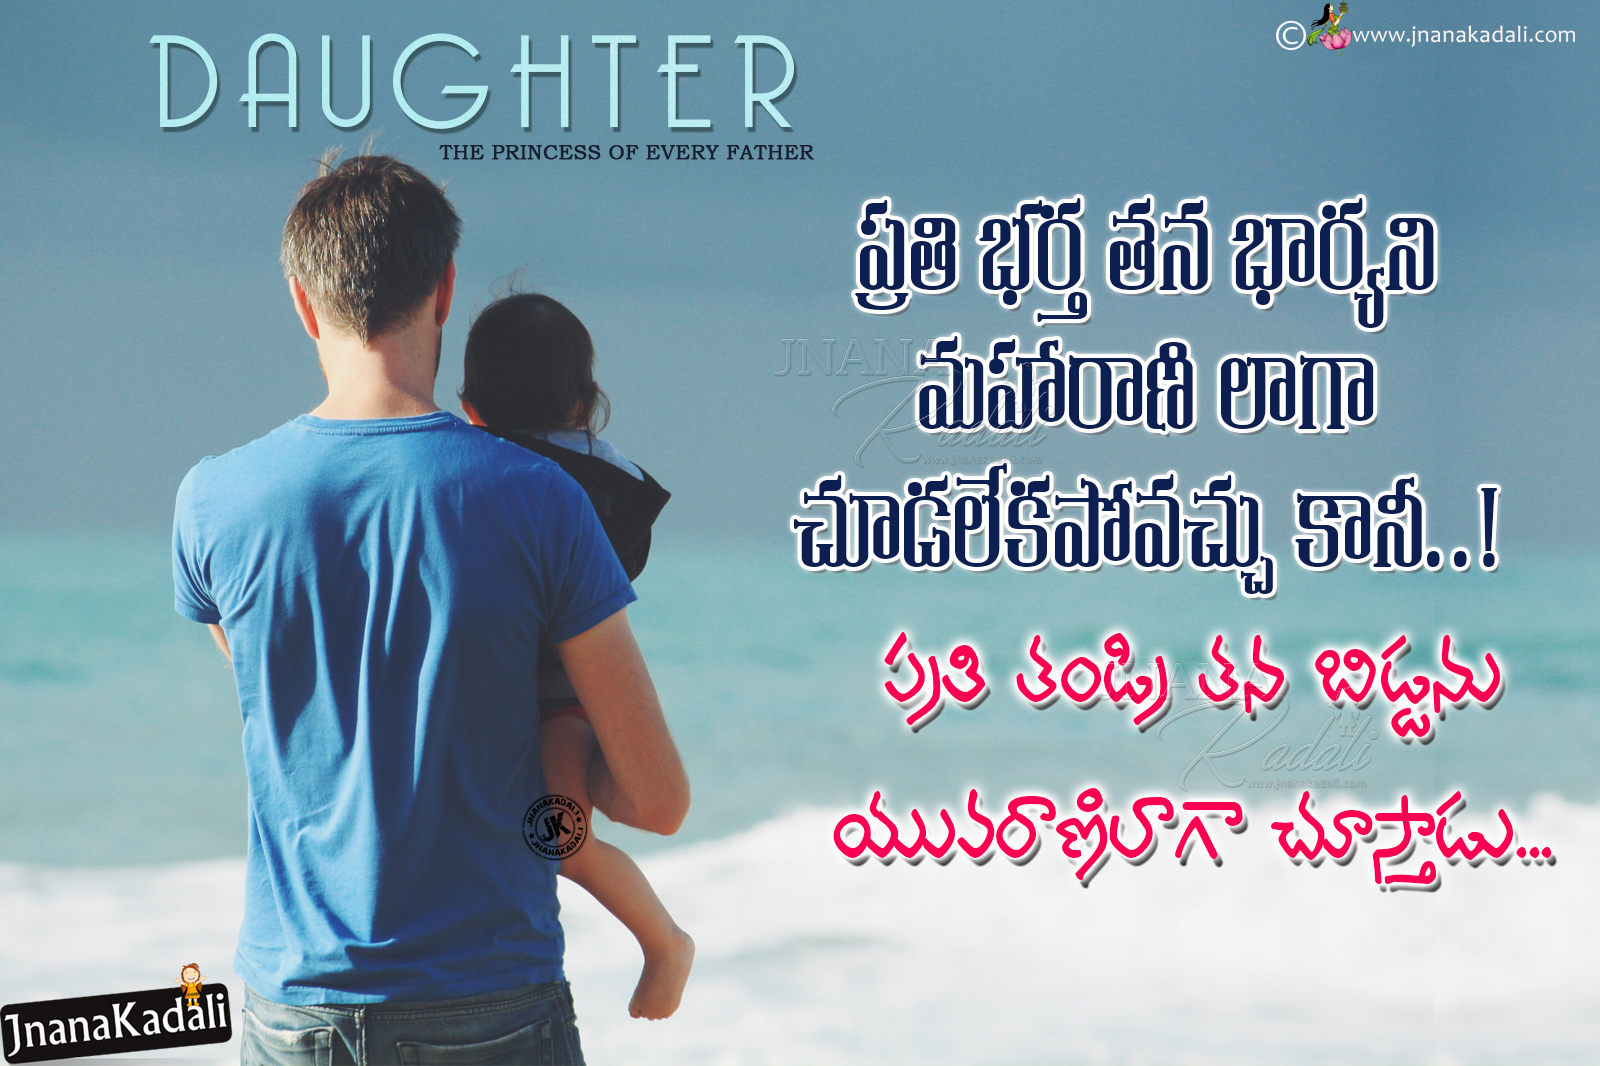 Father And Daughter Cute Love Quotes In Telugu Daughter And Father